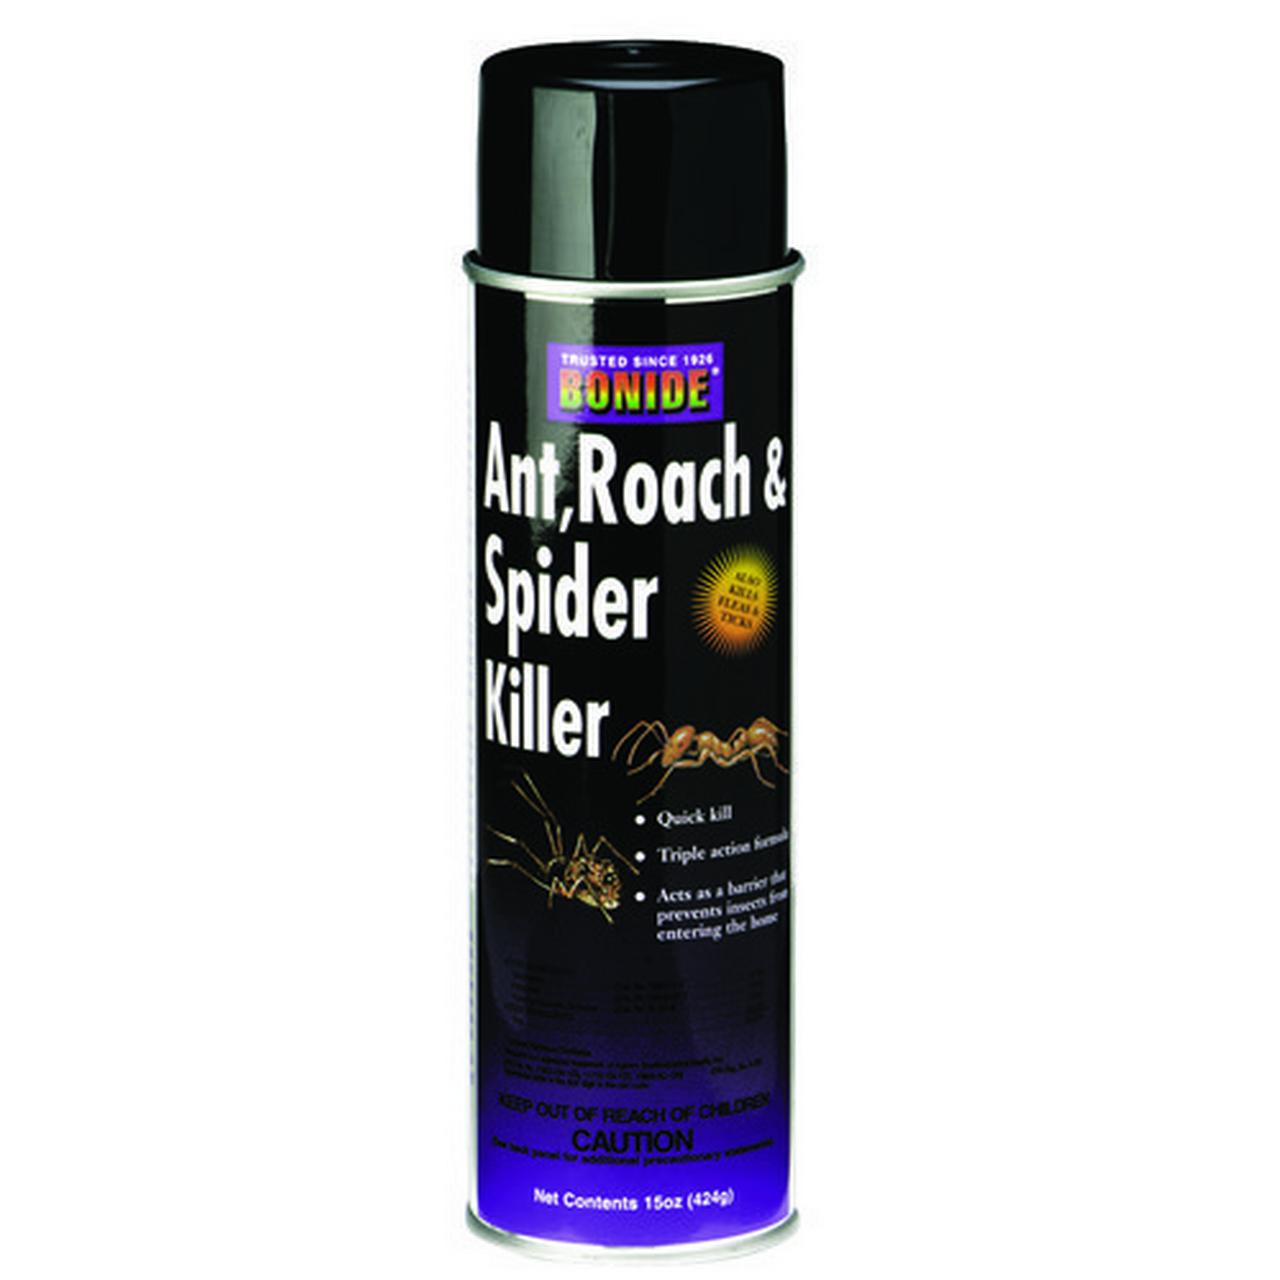 Bonide Products Inc P 404 Ant Roach & Spider Killer